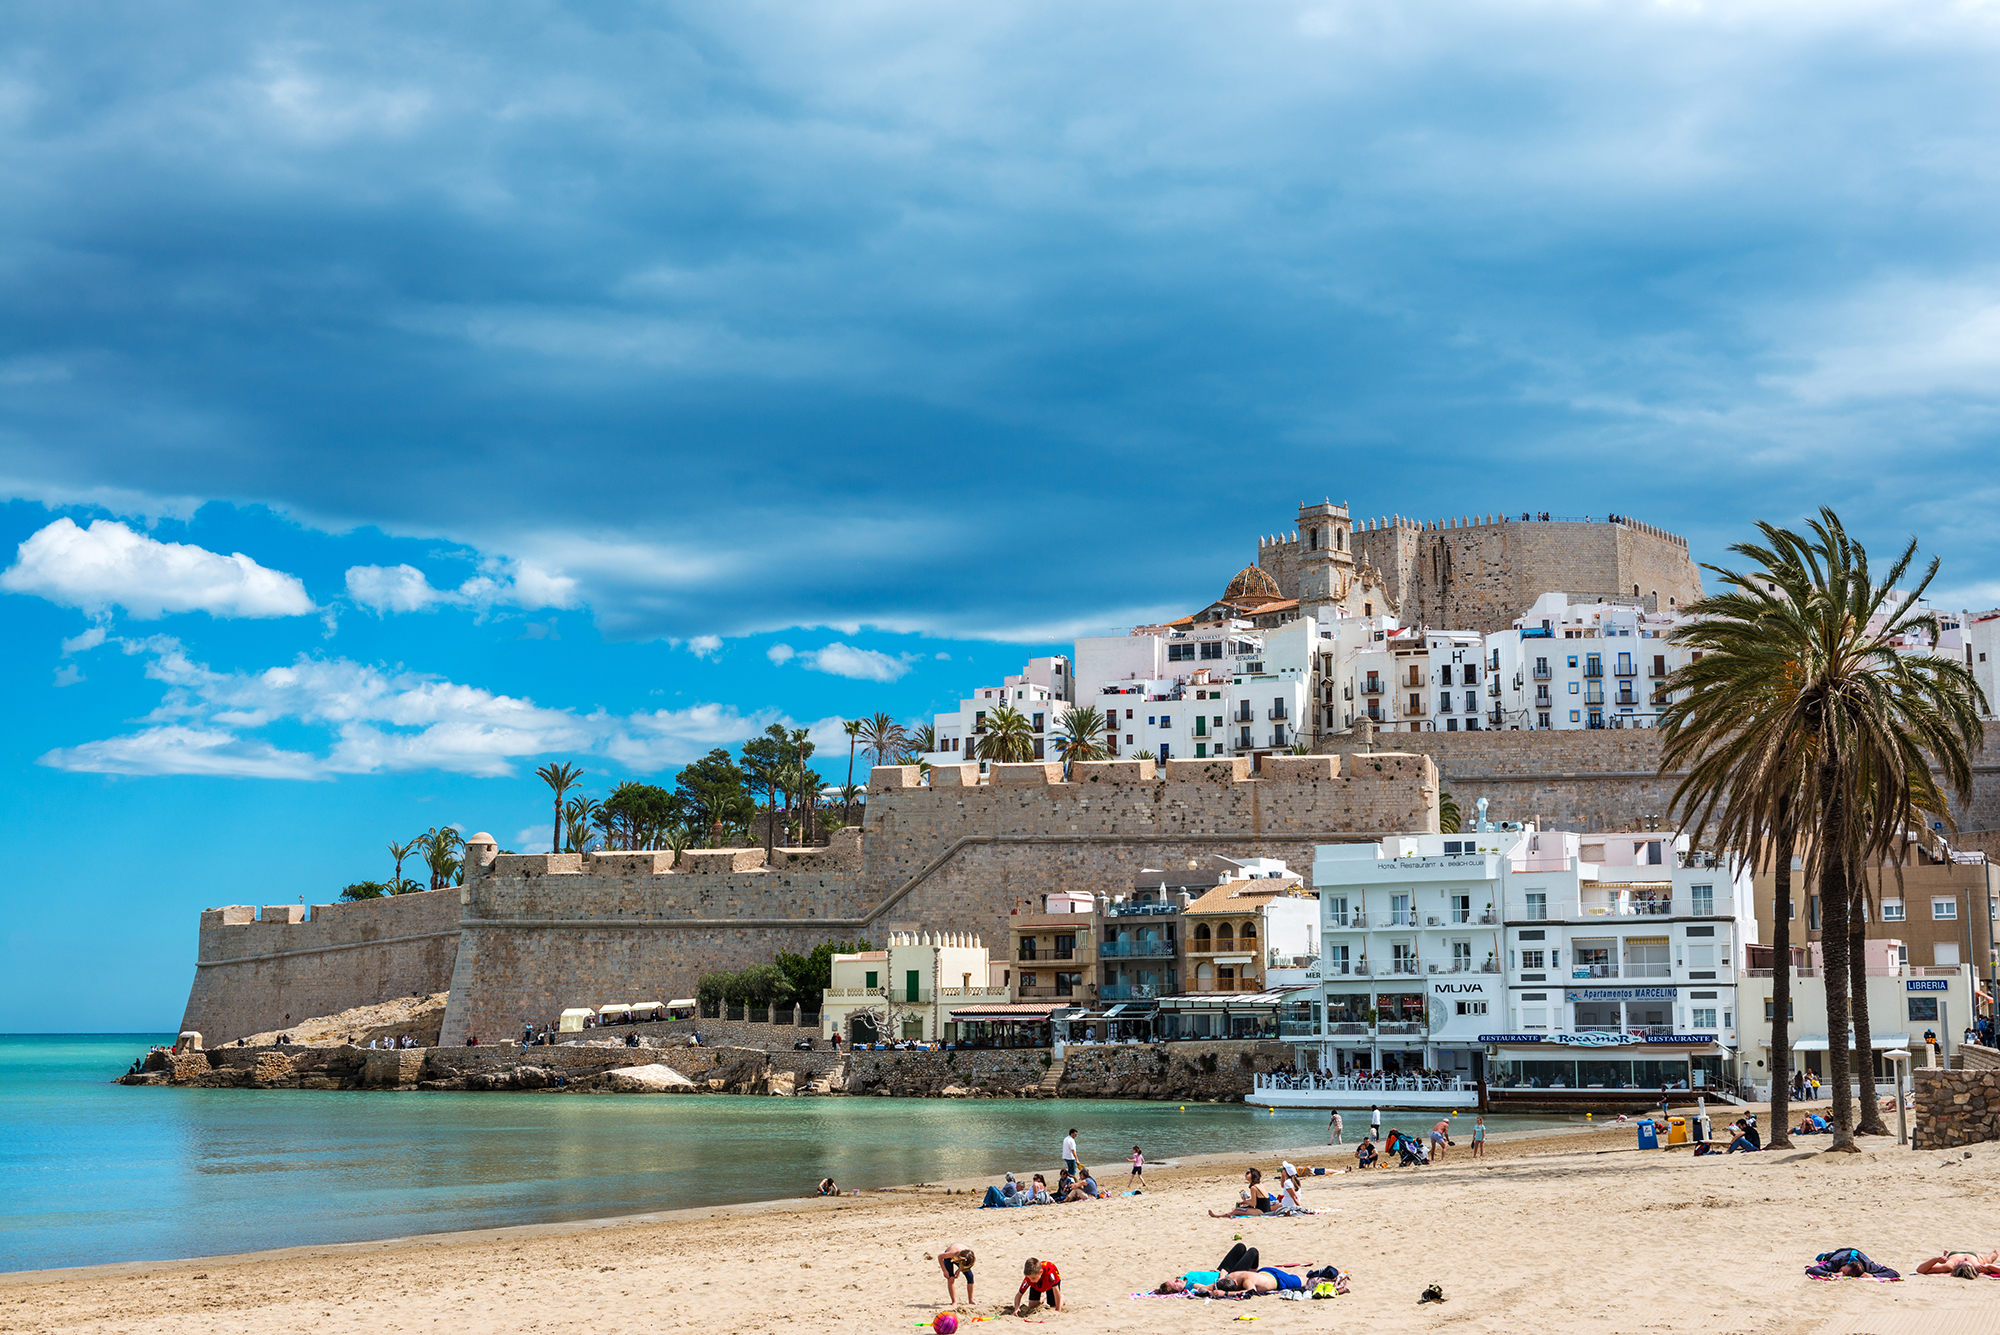 Panorama view of the fortified city of Peñíscola from the beach